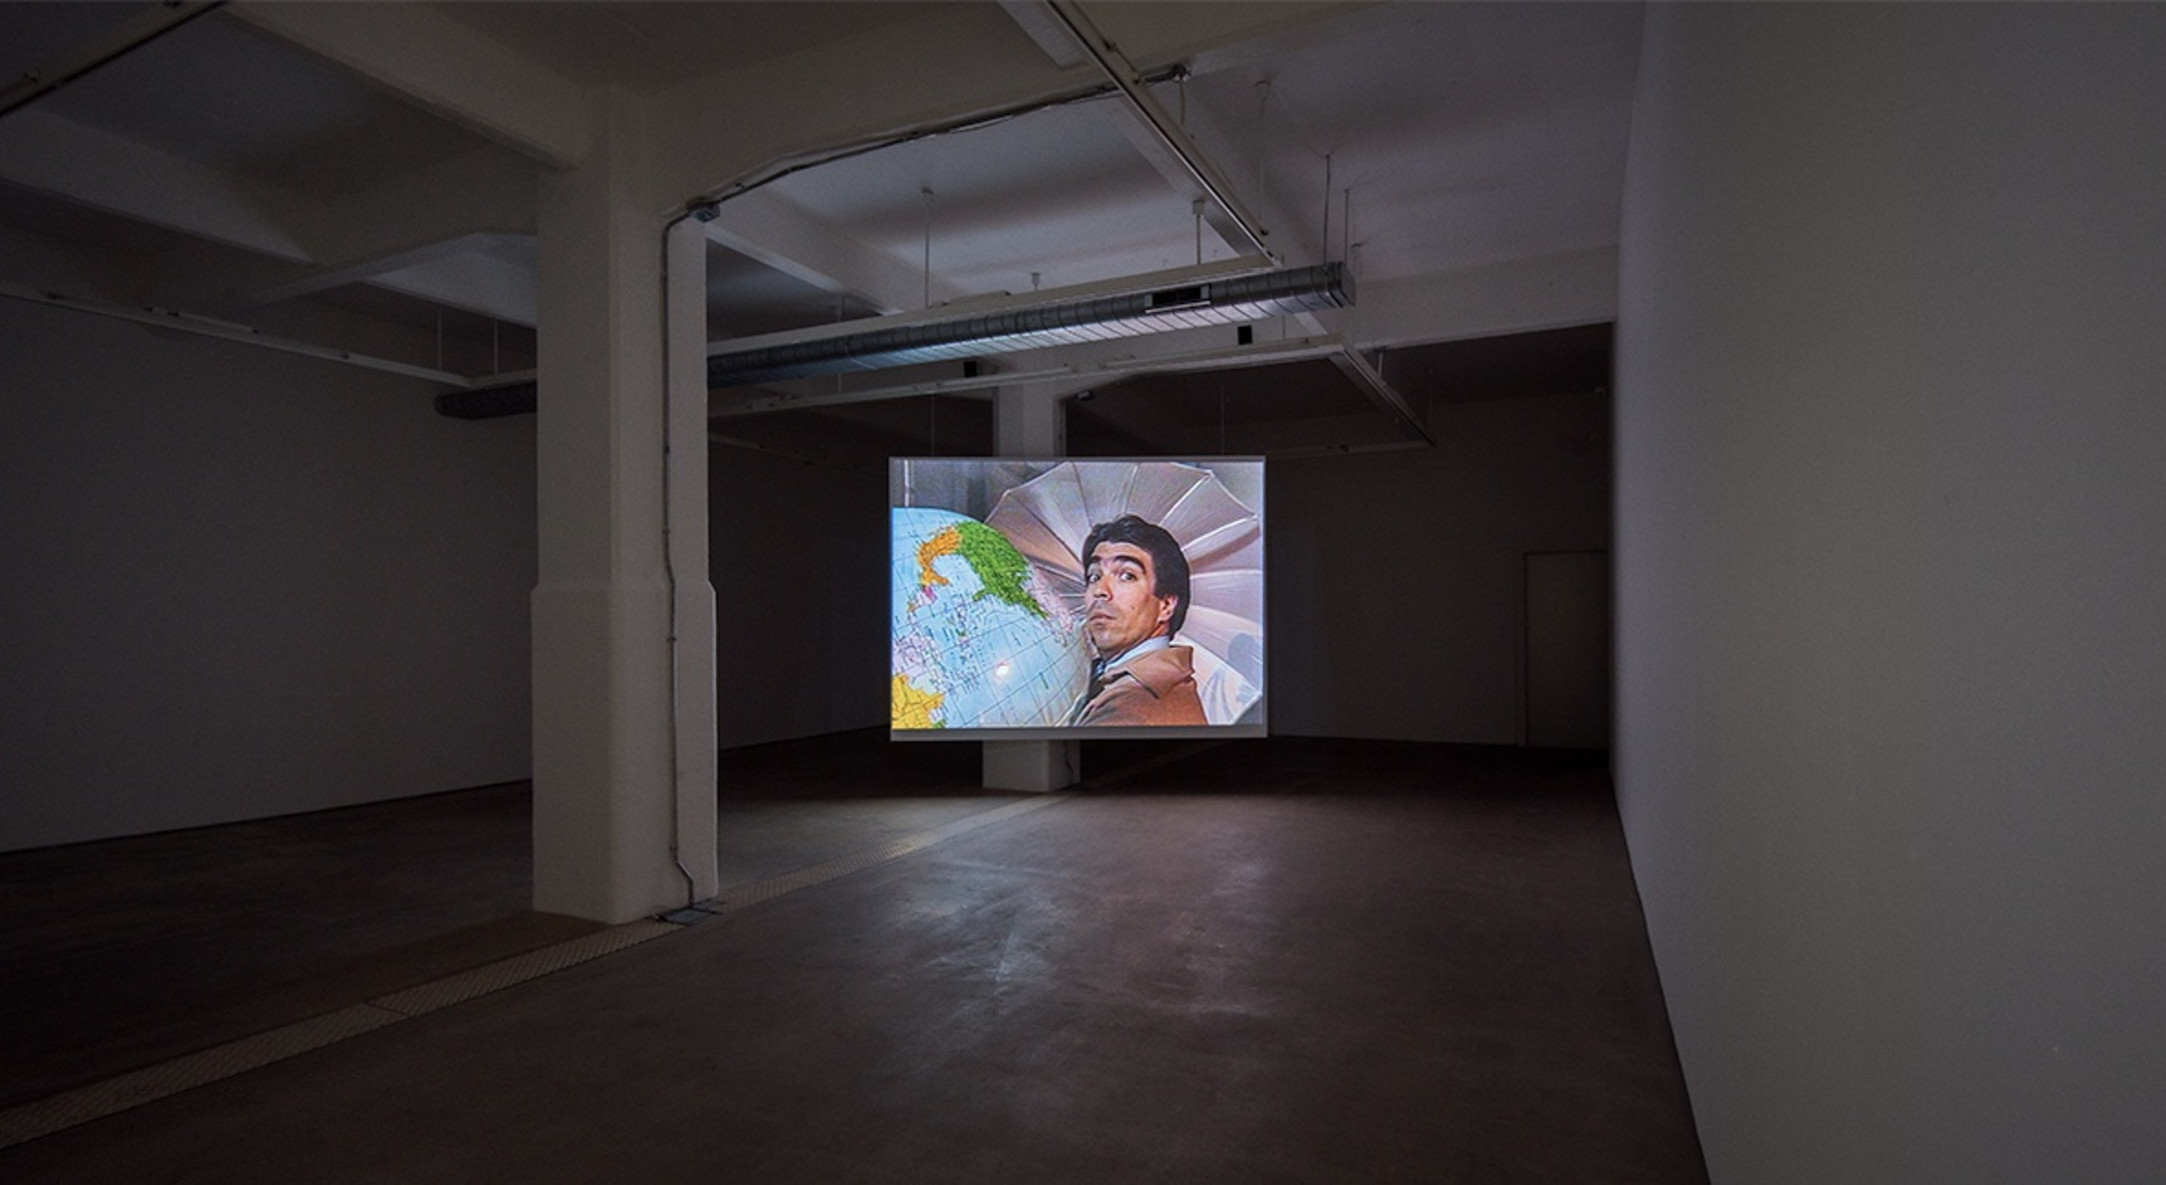 Installation view of Positions: Film Series at Hales Gallery London, 2015